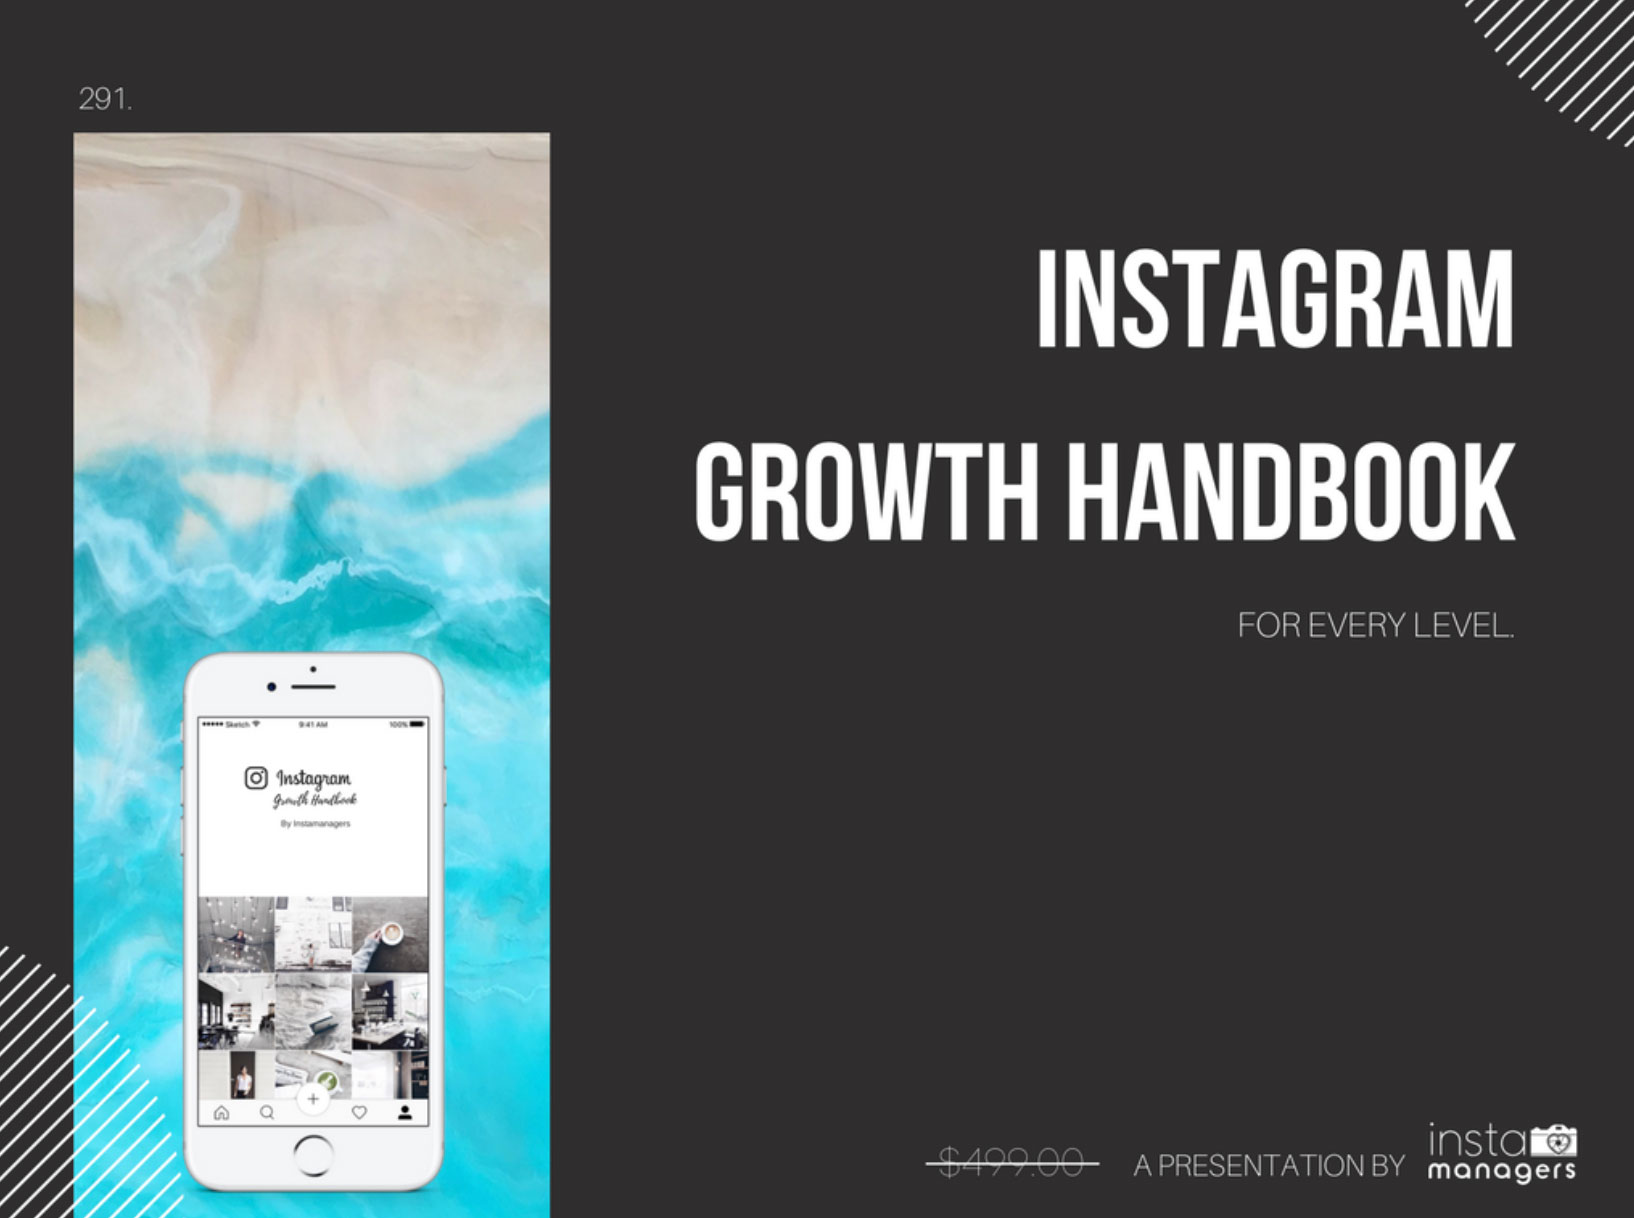 Instagram Growth Handbook